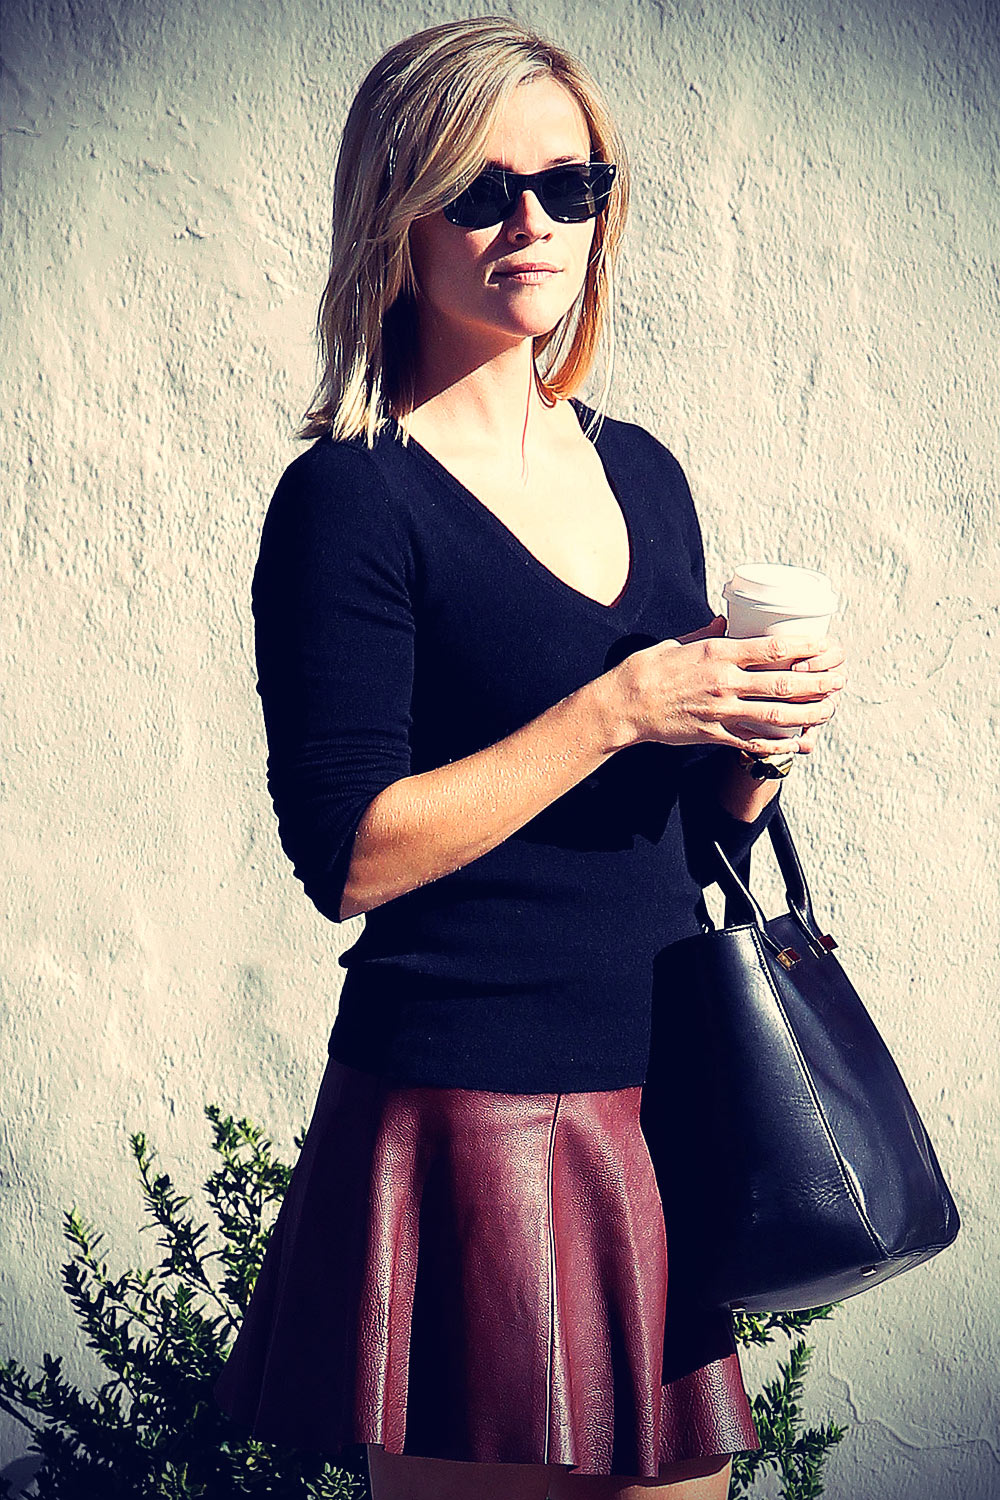 Reese Witherspoon goes to a medical building in BH